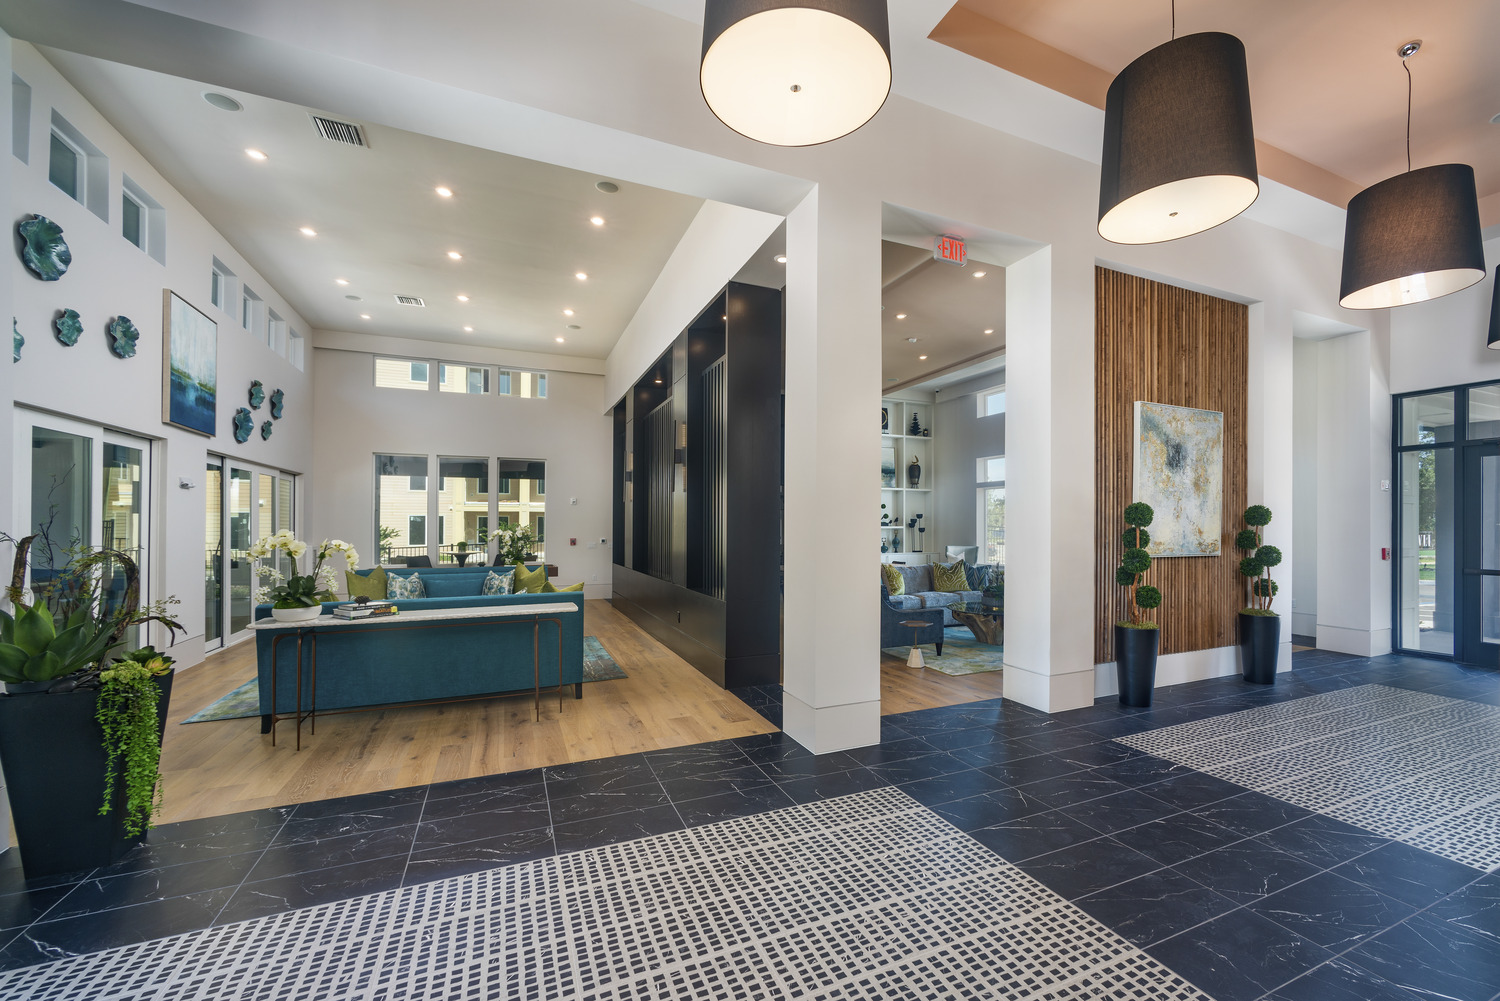 CBG builds The Avli at Crosstown Center, a Multi-Building Luxury Garden-Style Community with Clubhouse in Brandon, FL - Image #4